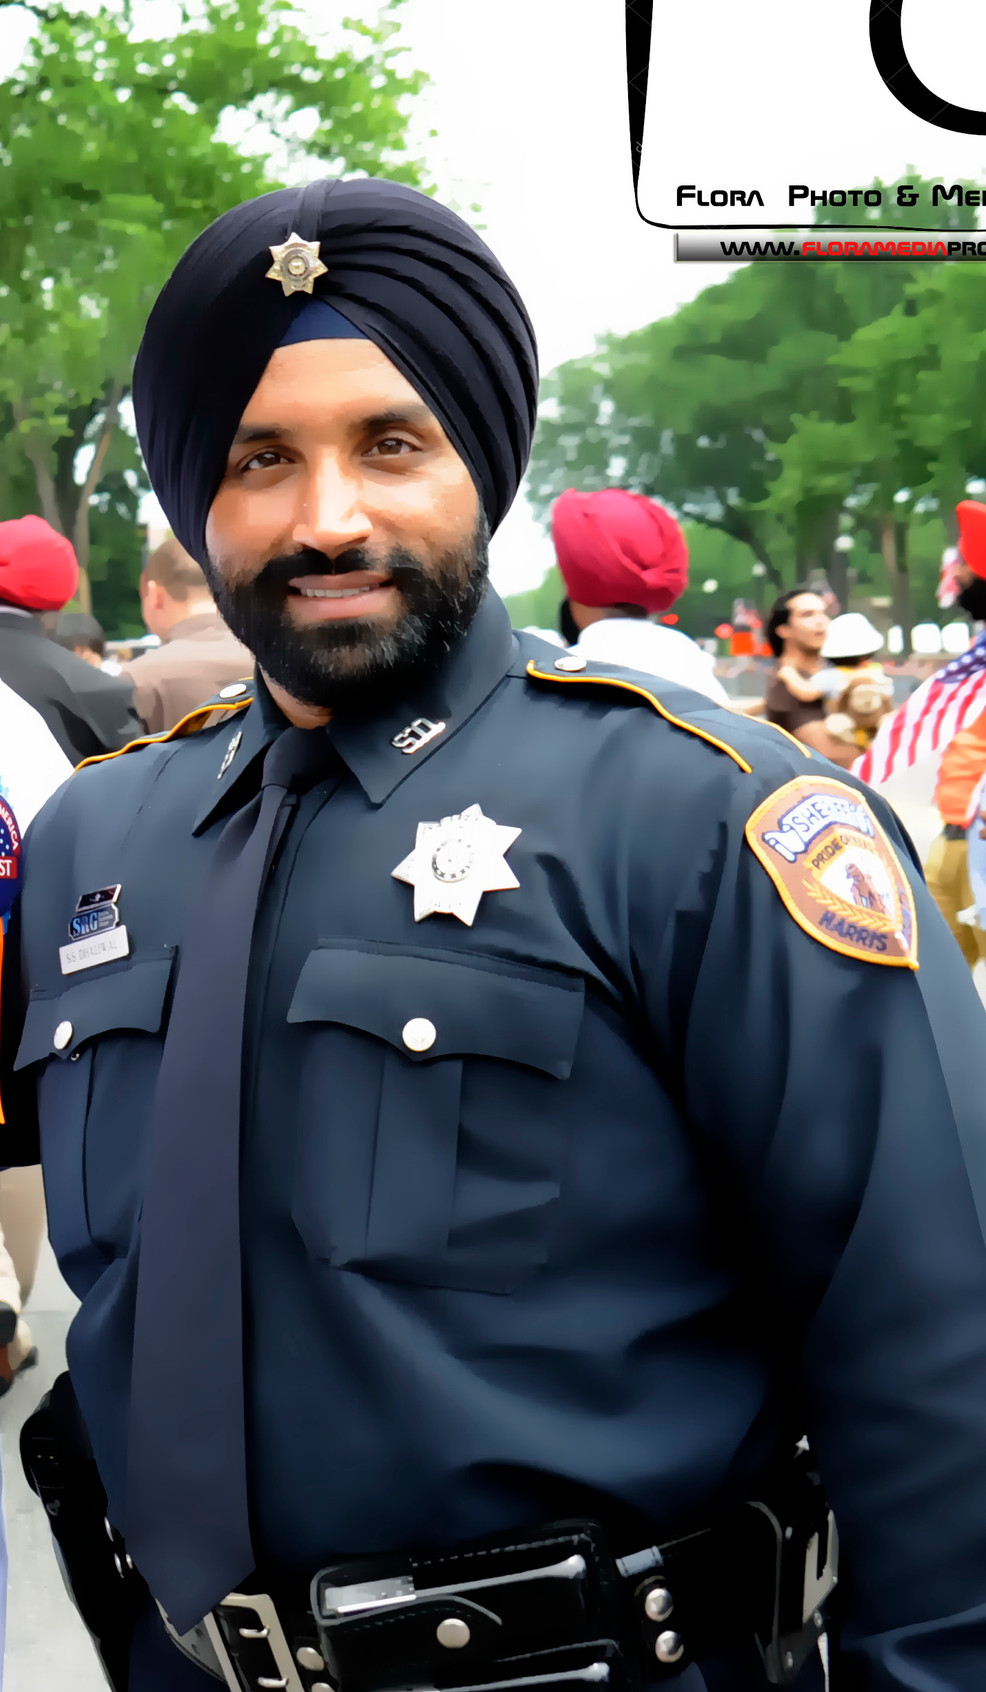 Harris County Deputy Sheriff Sandeep Singh Dhaliwal - Chief Guest of the Parade -2015 - Sikhs of Ame